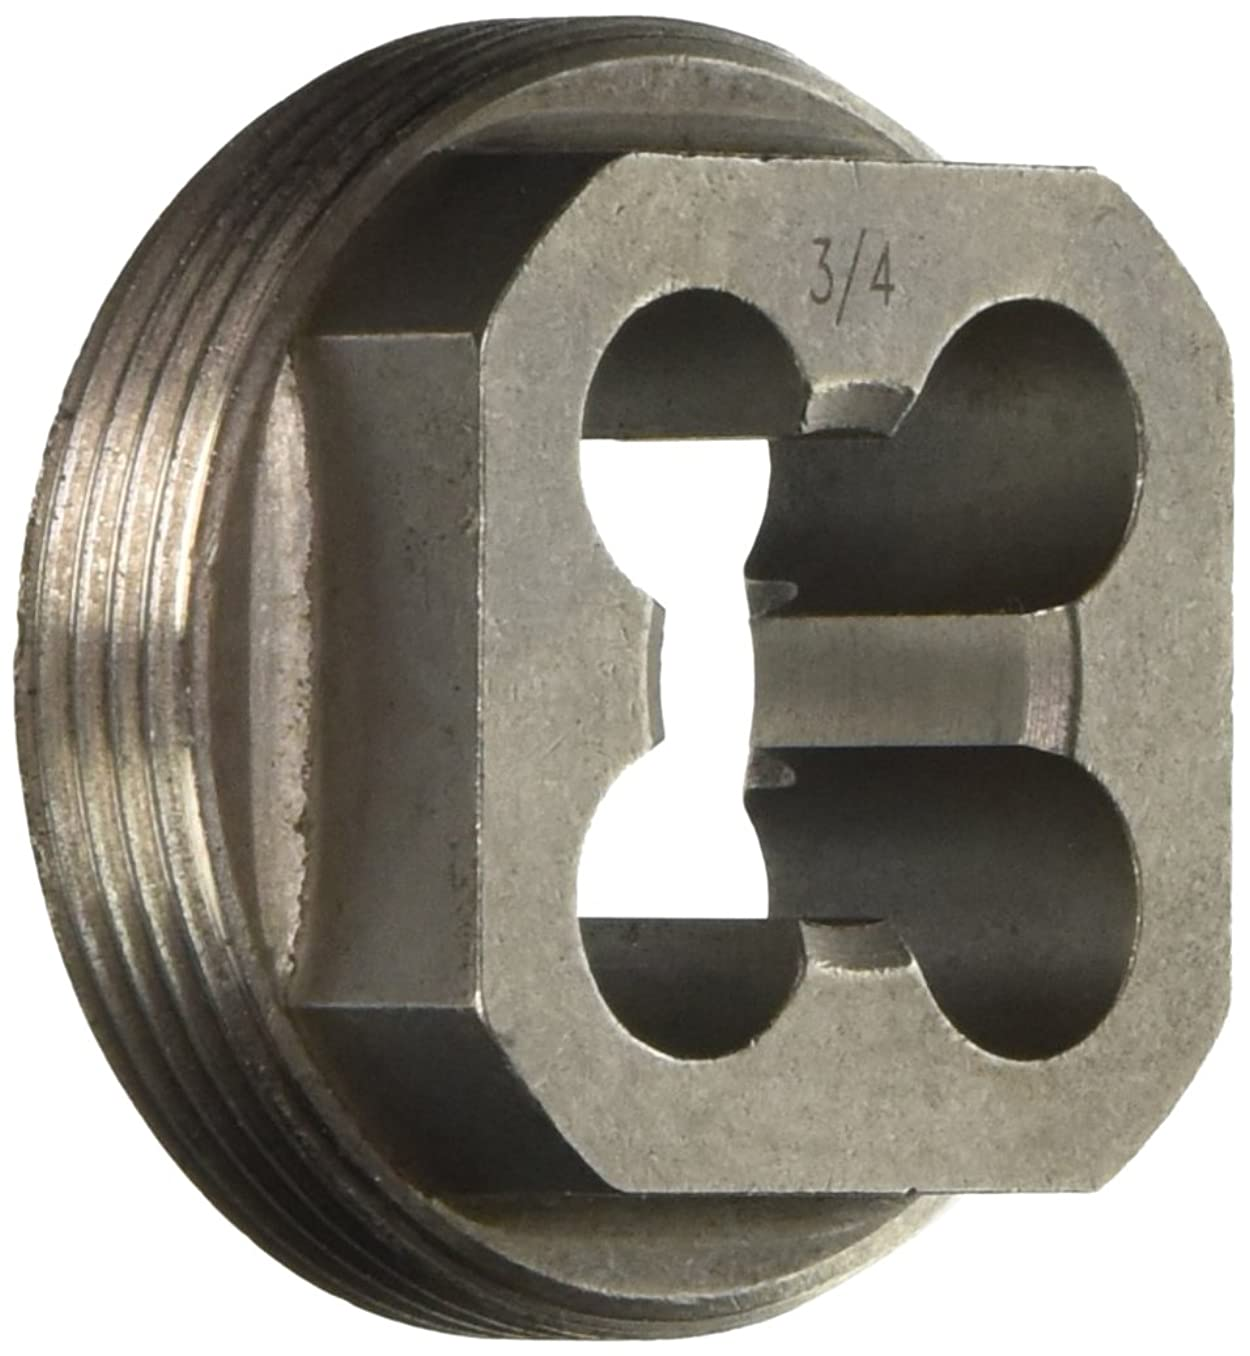 Cle-Line C66749 Style 0552 Quick-Set Guide for Two-Piece Die, 3/4